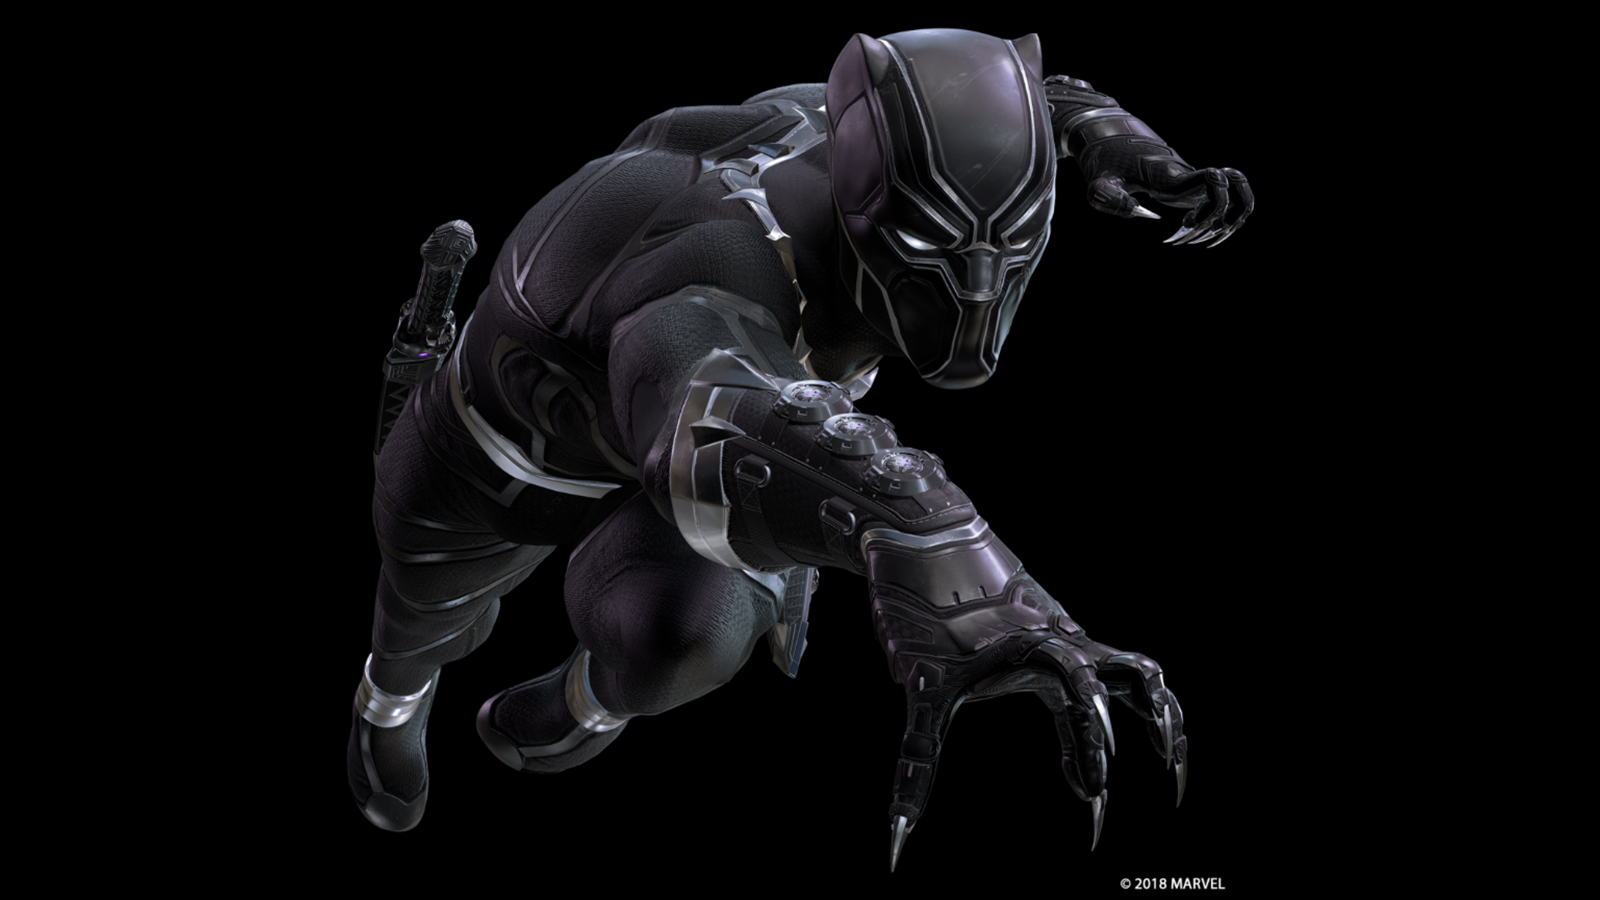 Marvel Powers United VR Launching On July 26 With Black Panther As A Playable Character